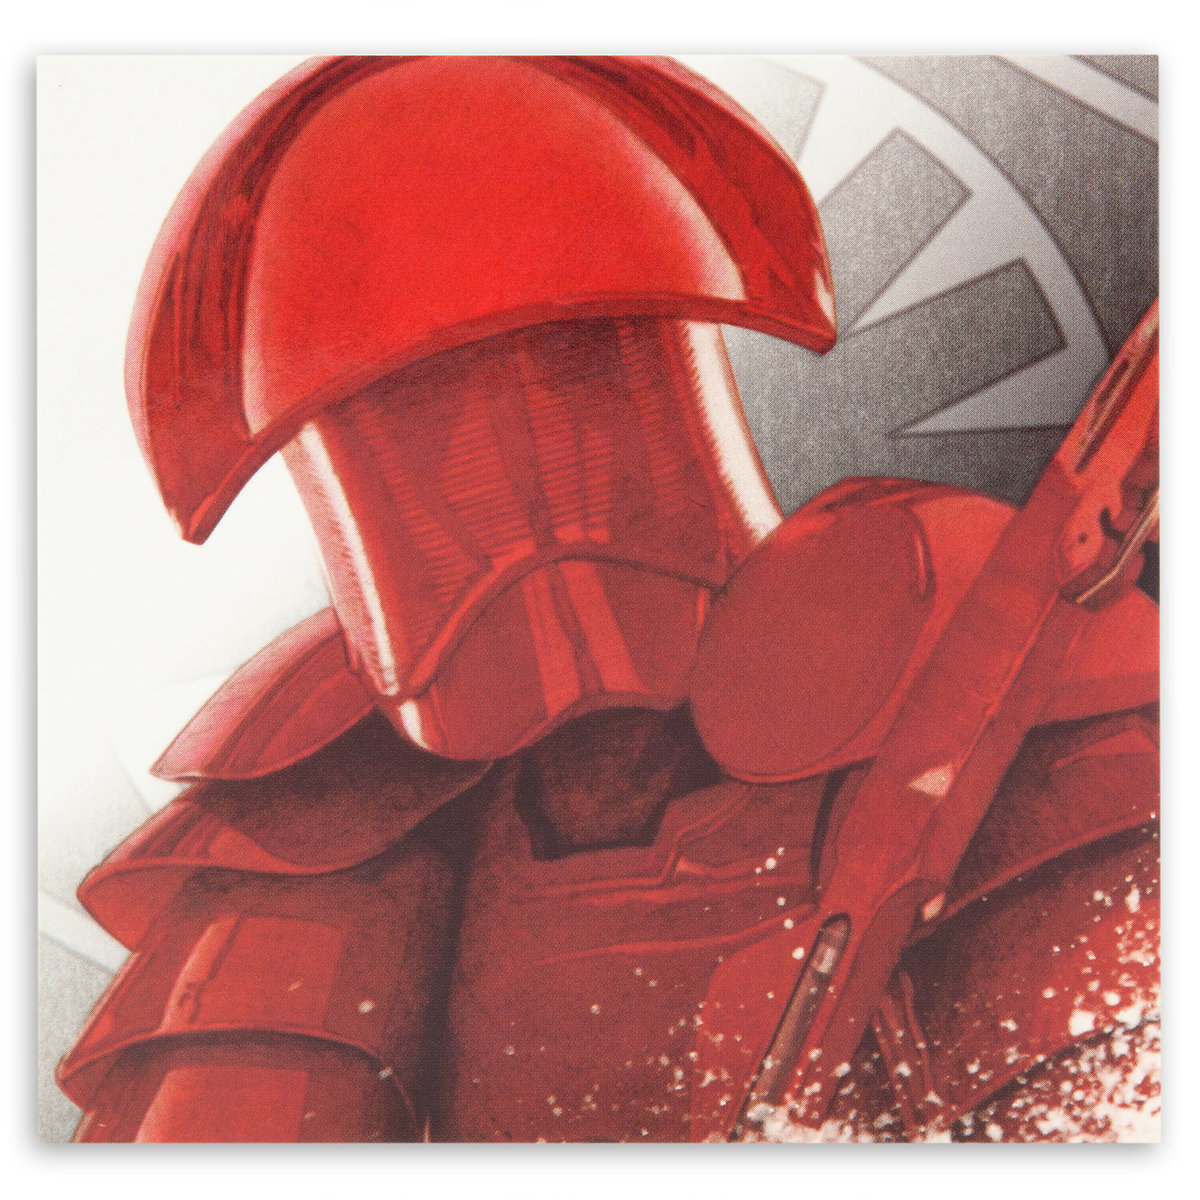 TLJ Praetorian Guard Pin & Lithograph Set 3